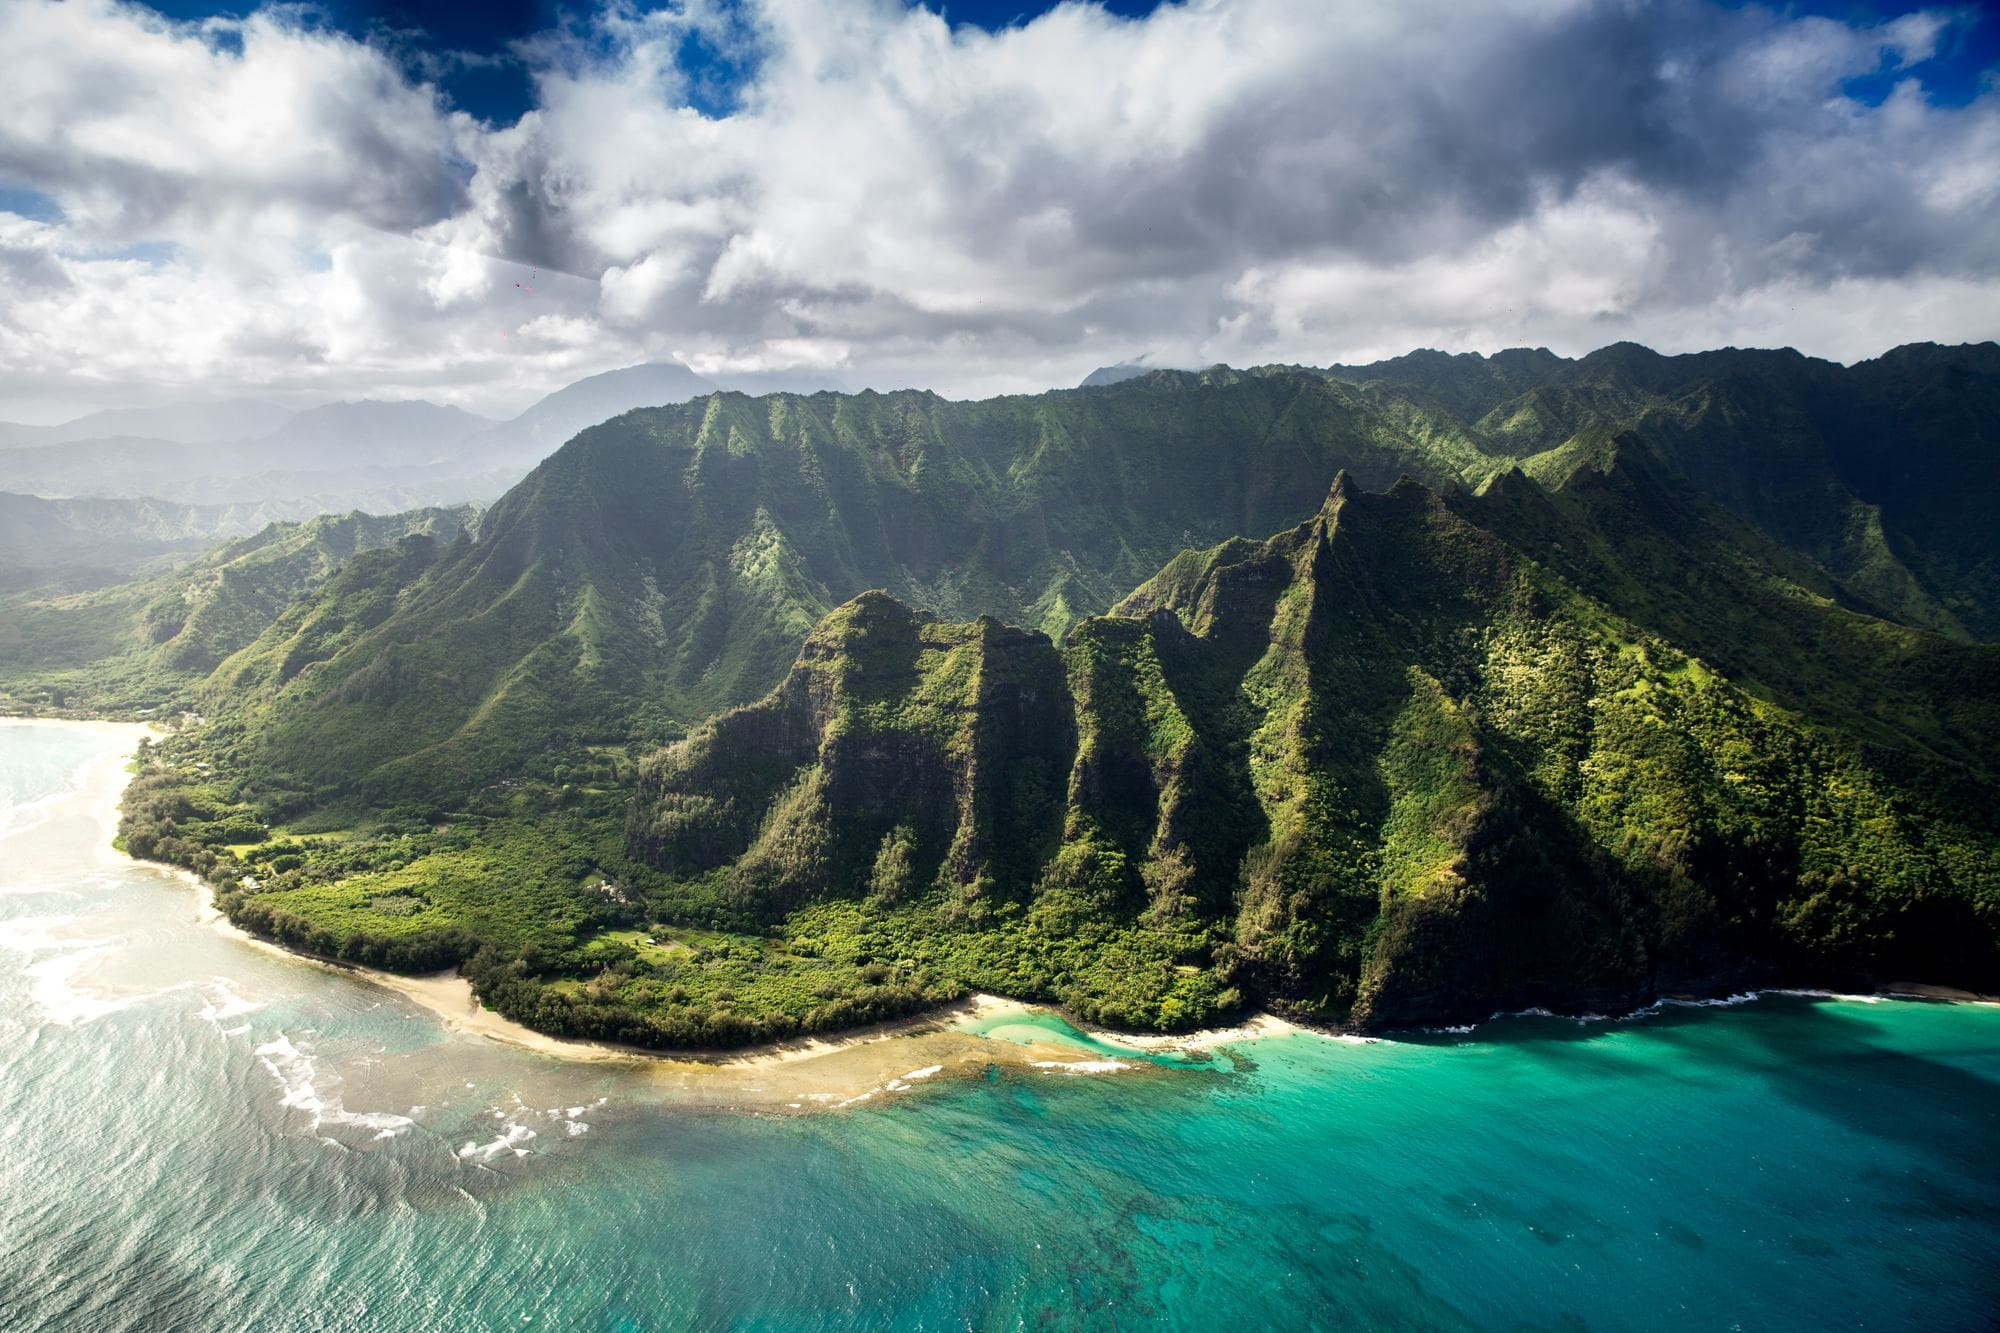 Hawaii / Hit the slopes or cruise the coast with our list of 12 winter destinations for outdoor adventure, perfect for the sun-seeker and snow-lover alike.